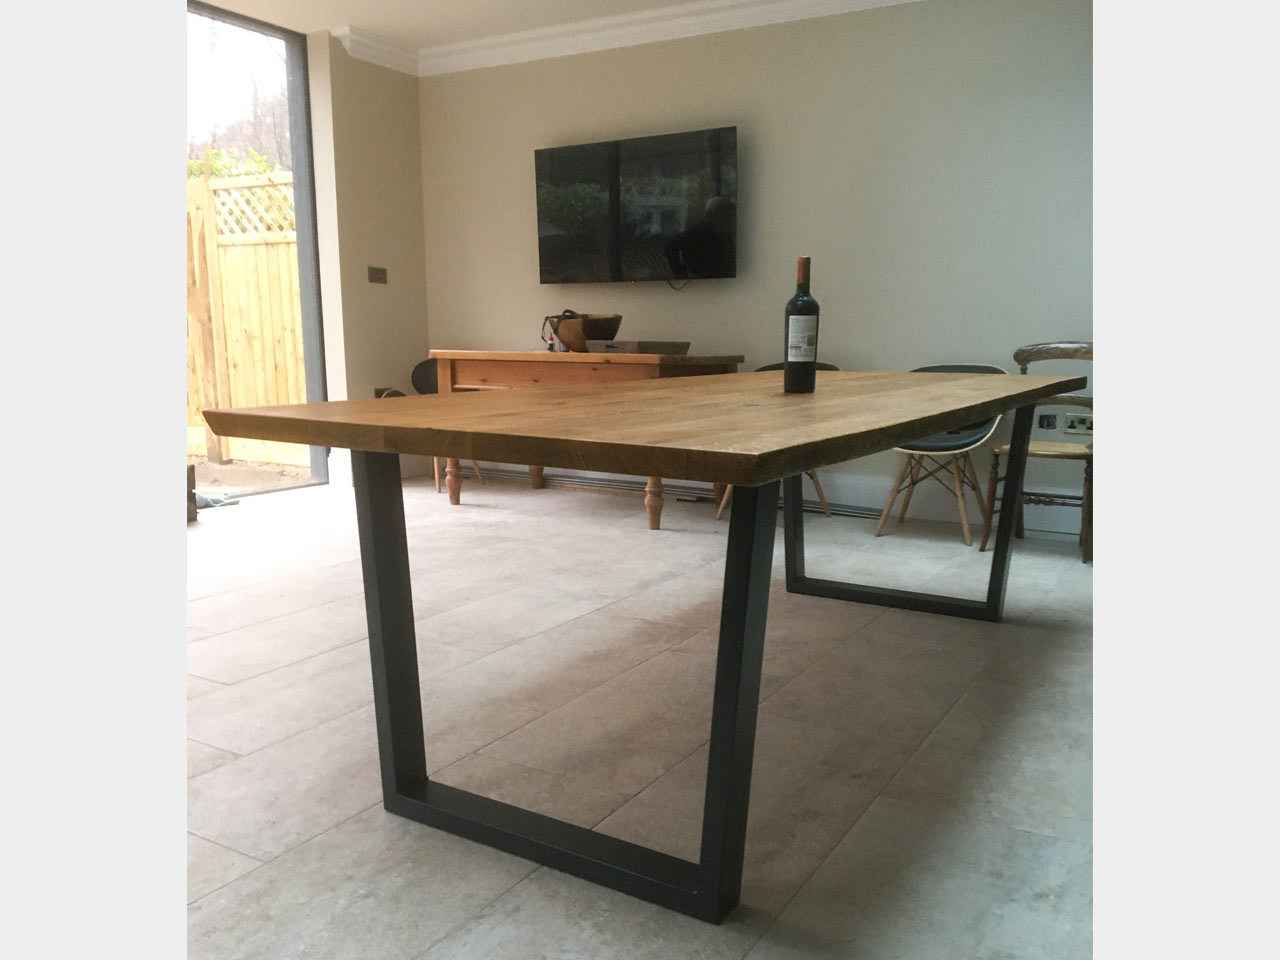 abacus-tables-project-882-pic-1